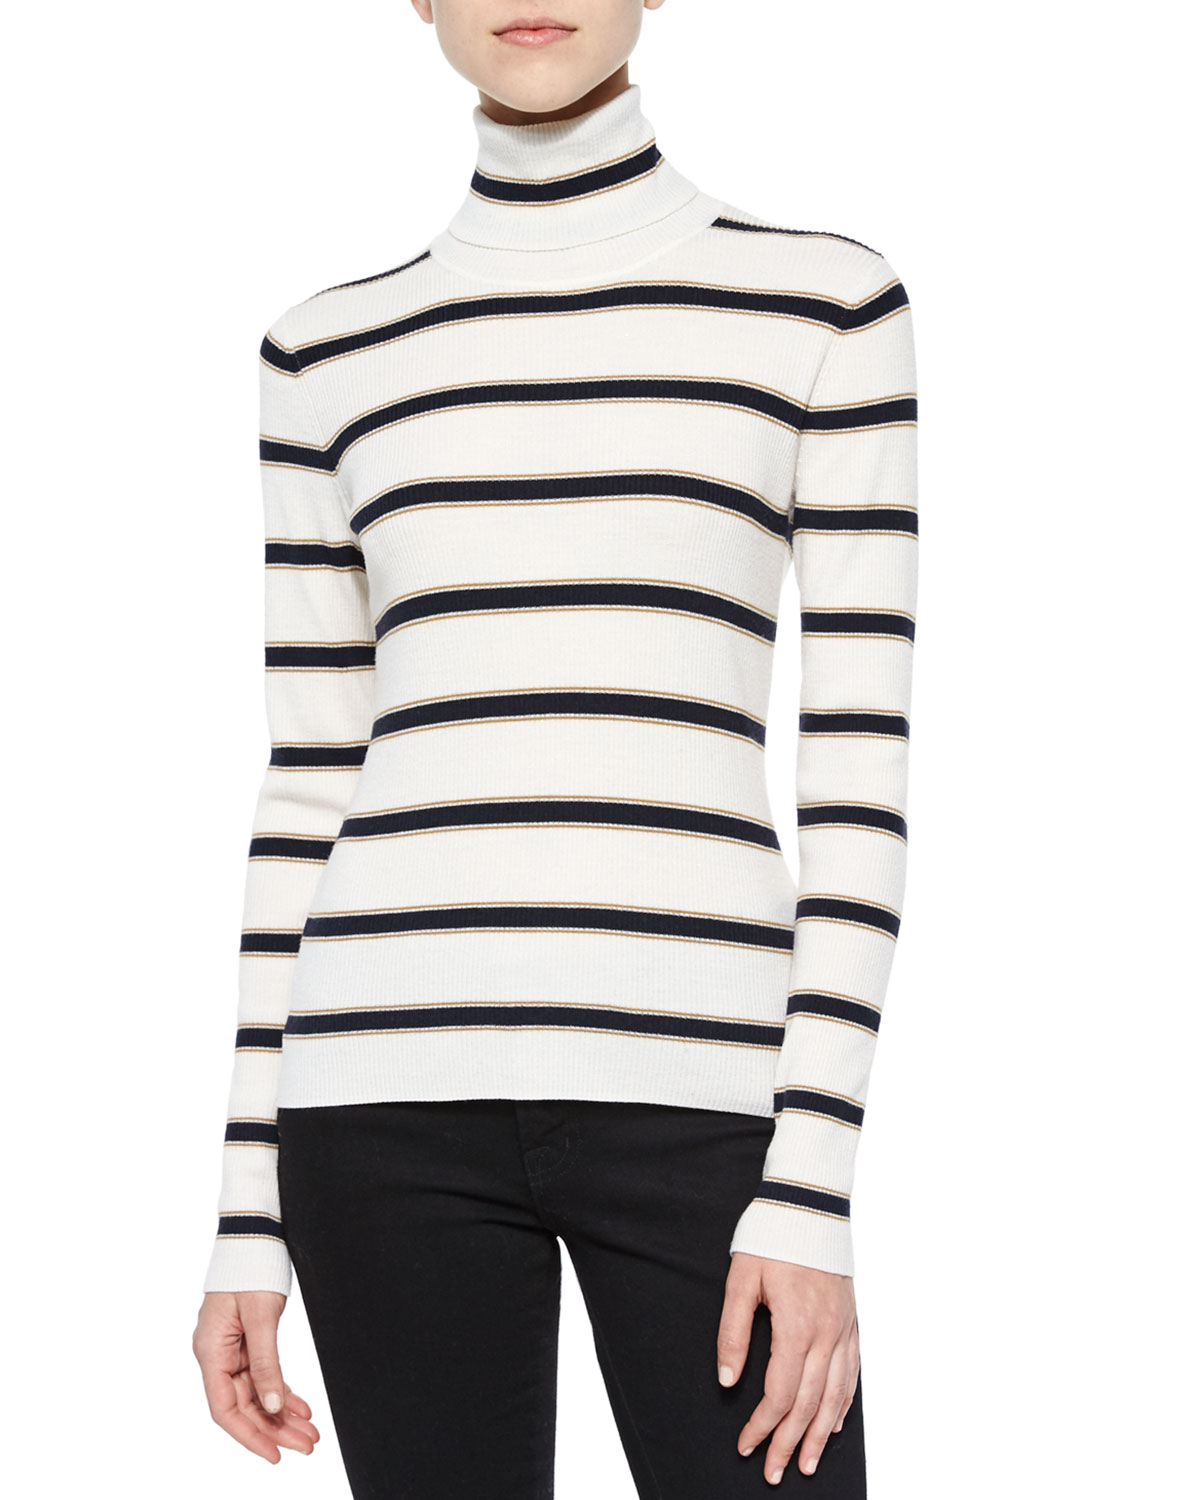 A.L.C. Ollie Striped Turtleneck Sweater, Size: LARGE, White/Navy/Tan